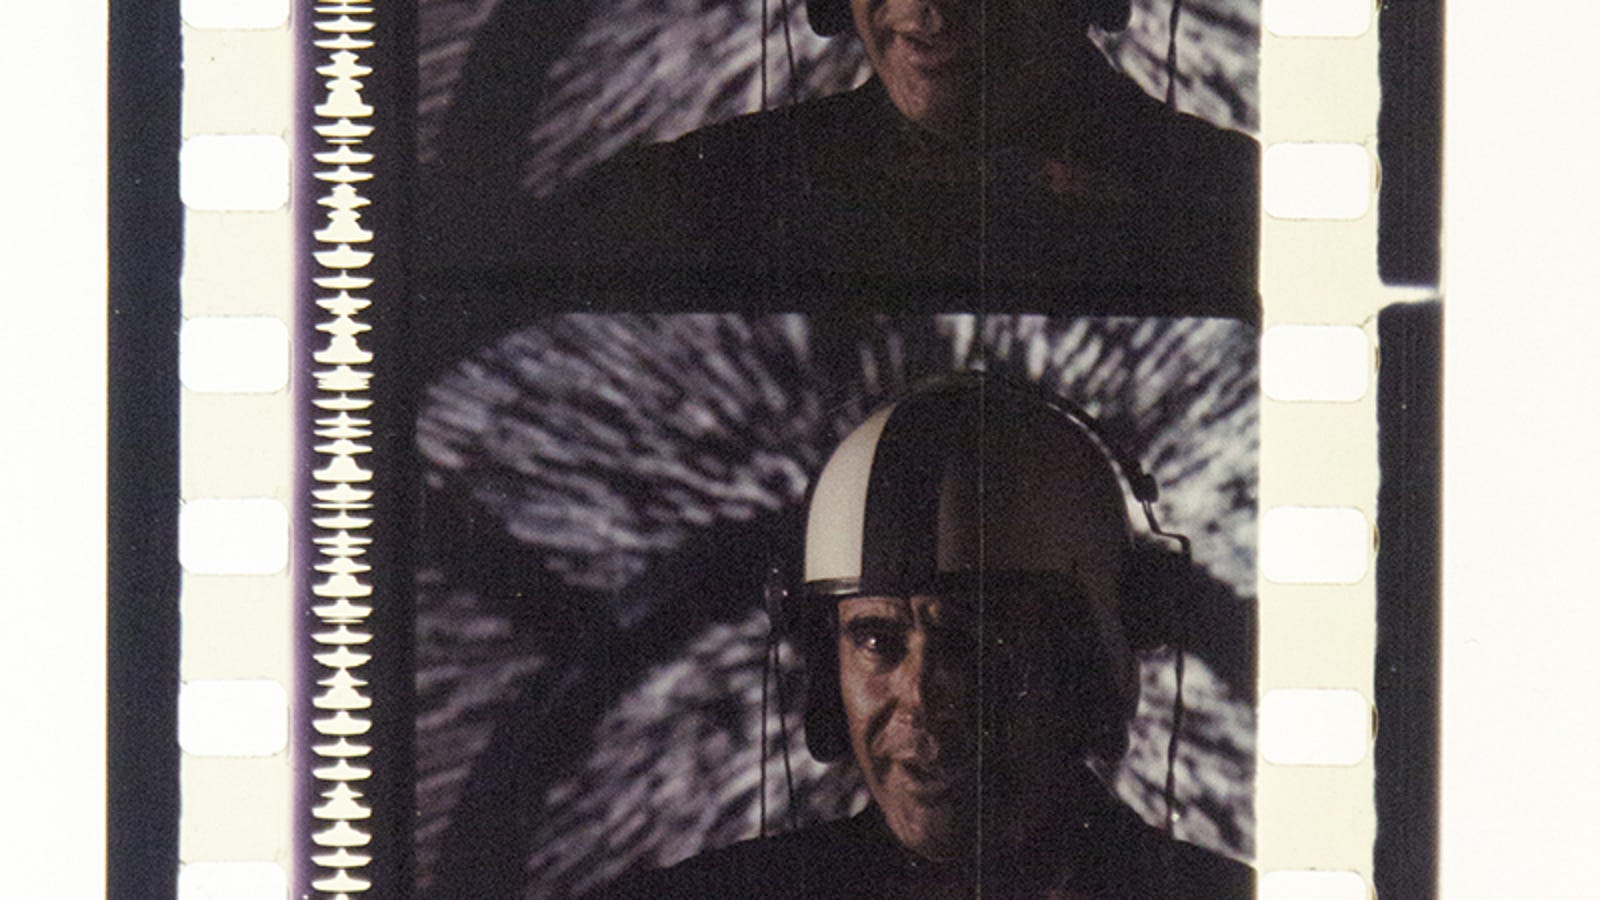 The Sole Surviving Print of the Legendary 'Turkish Star Wars' Has Been Found